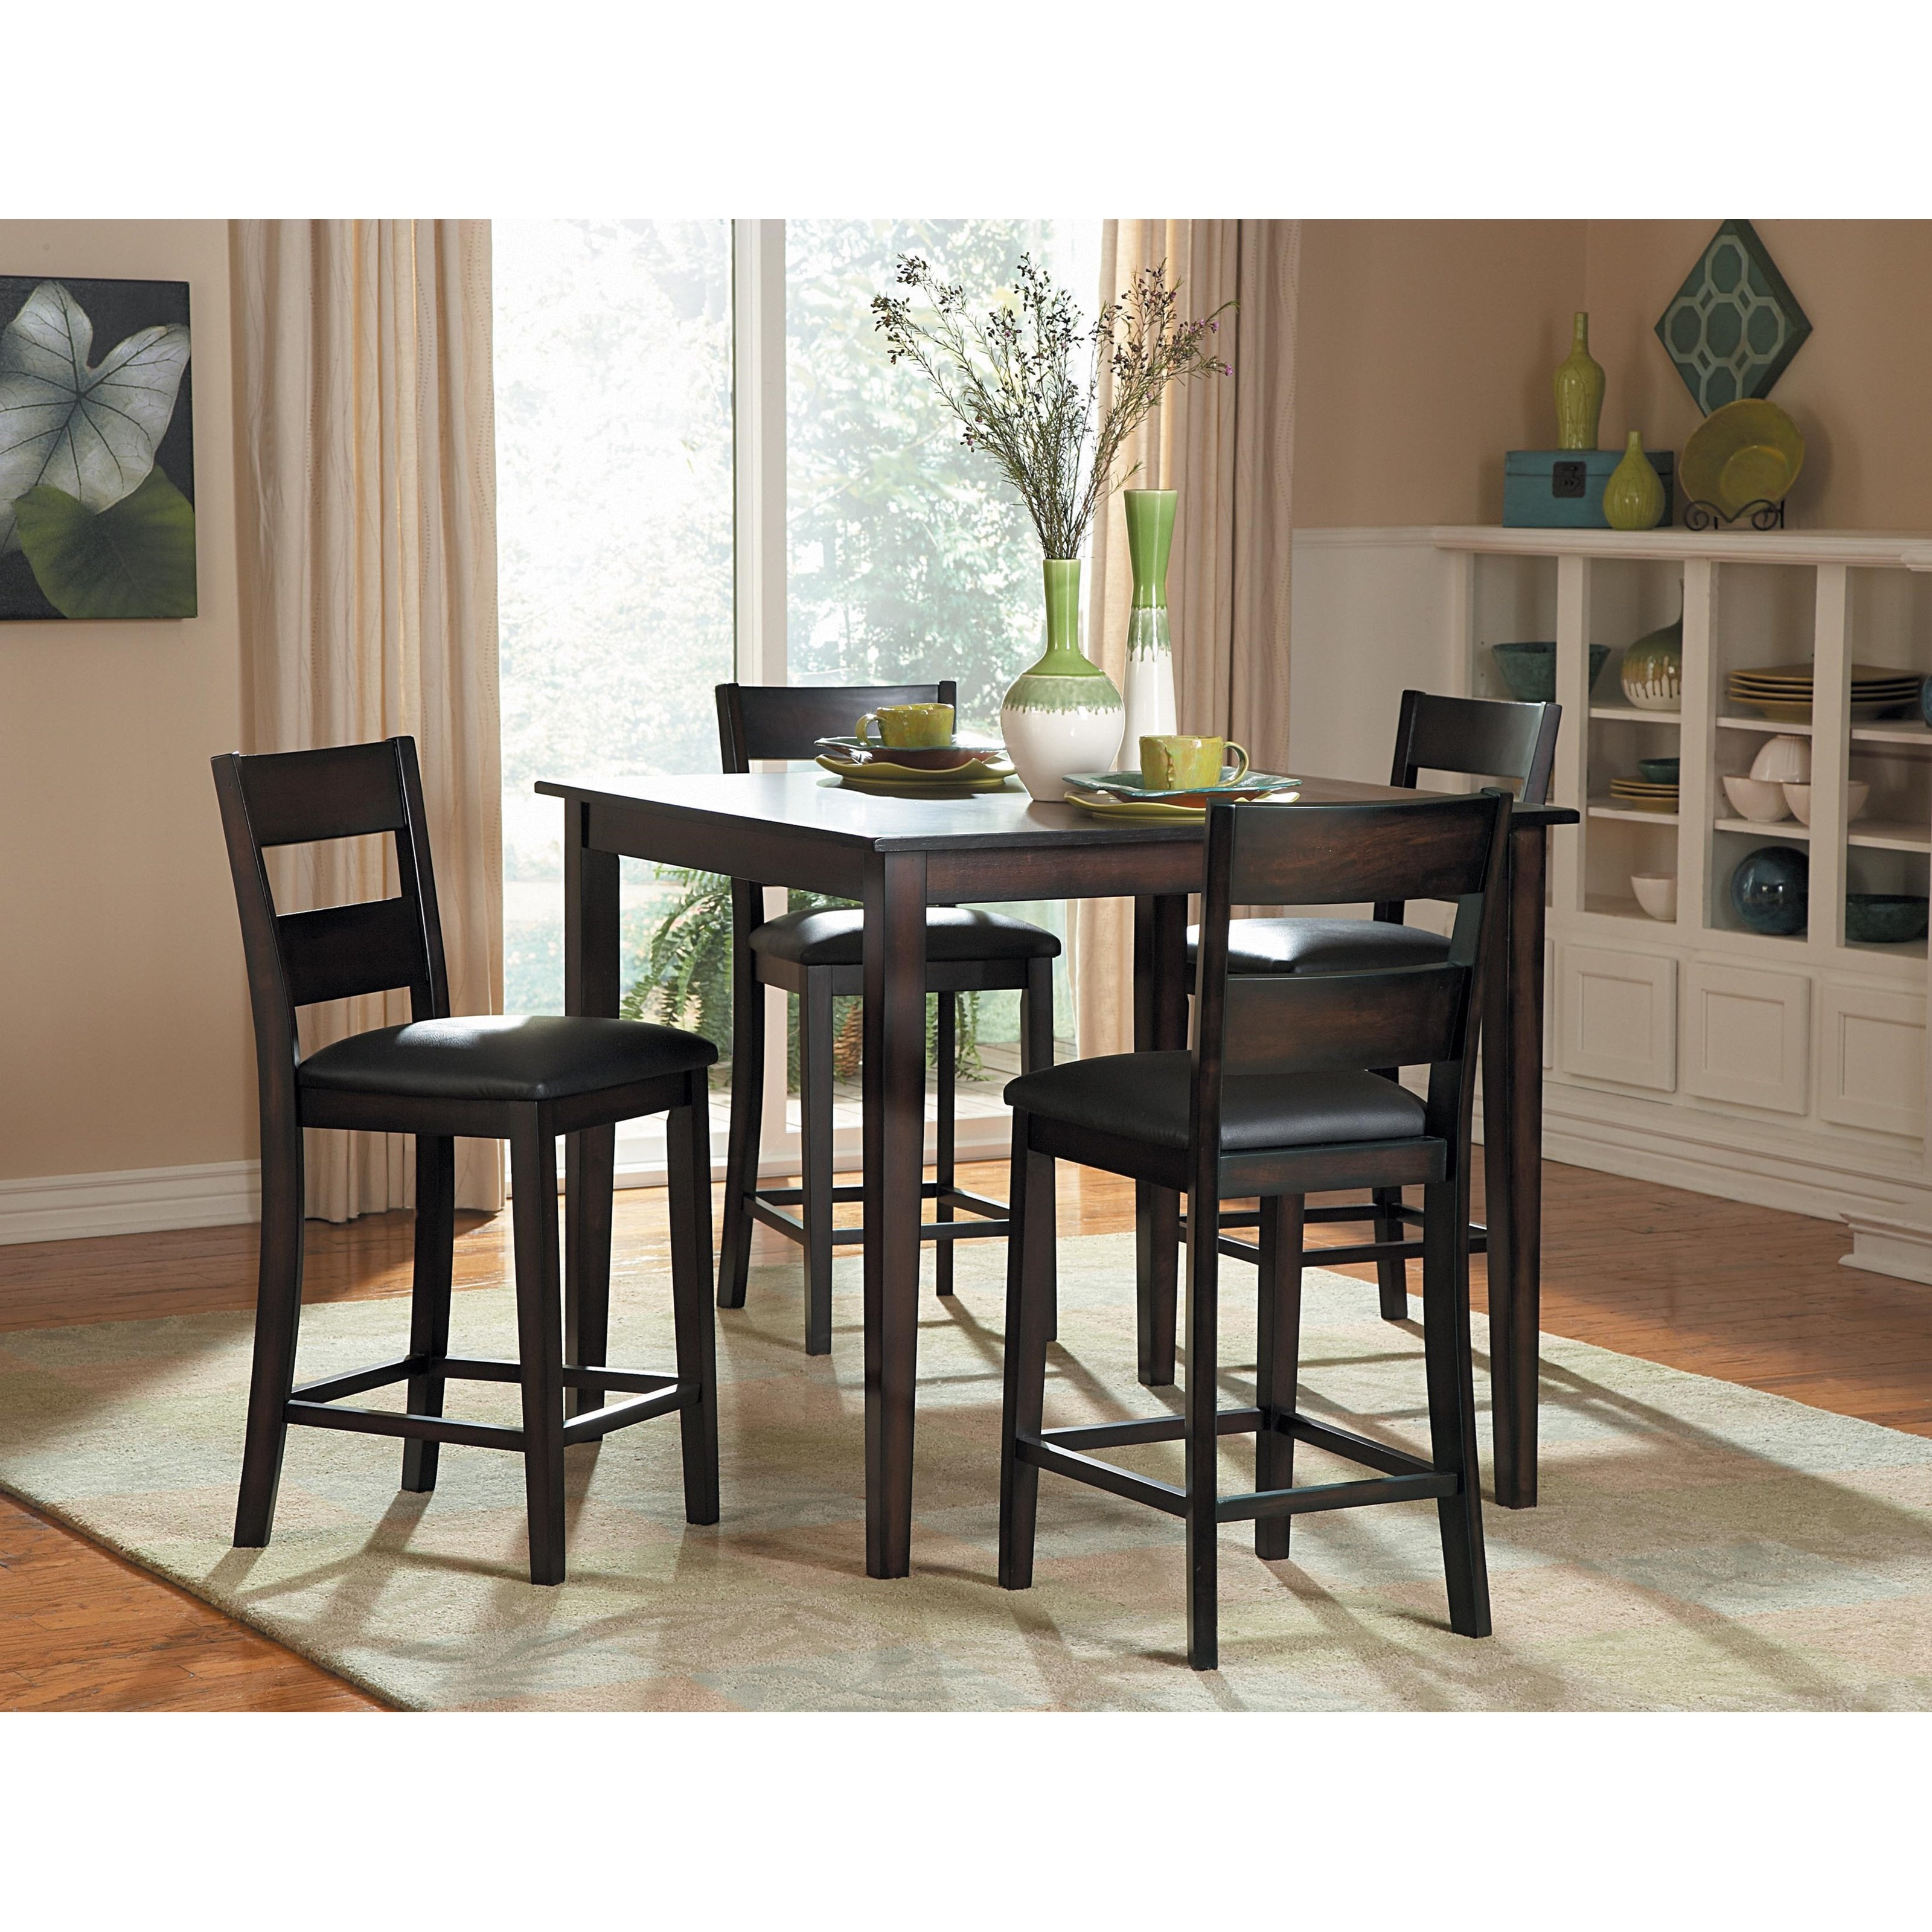 5Pc Counter Height Table and Chair Set